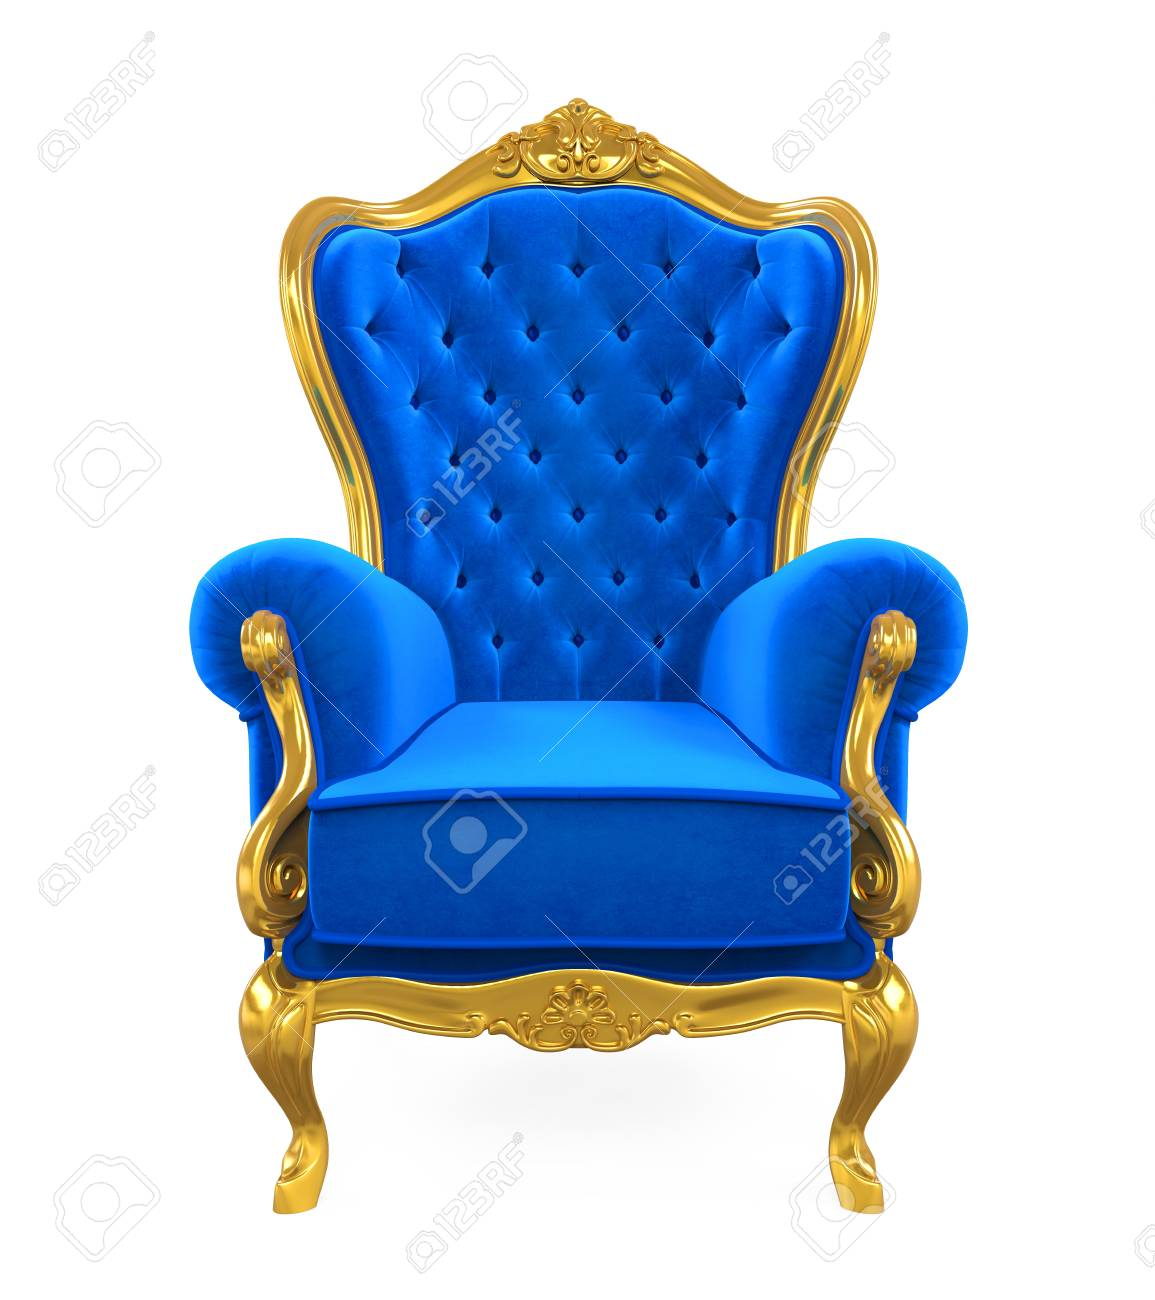 Blue Throne Chair Isolated - 82334250